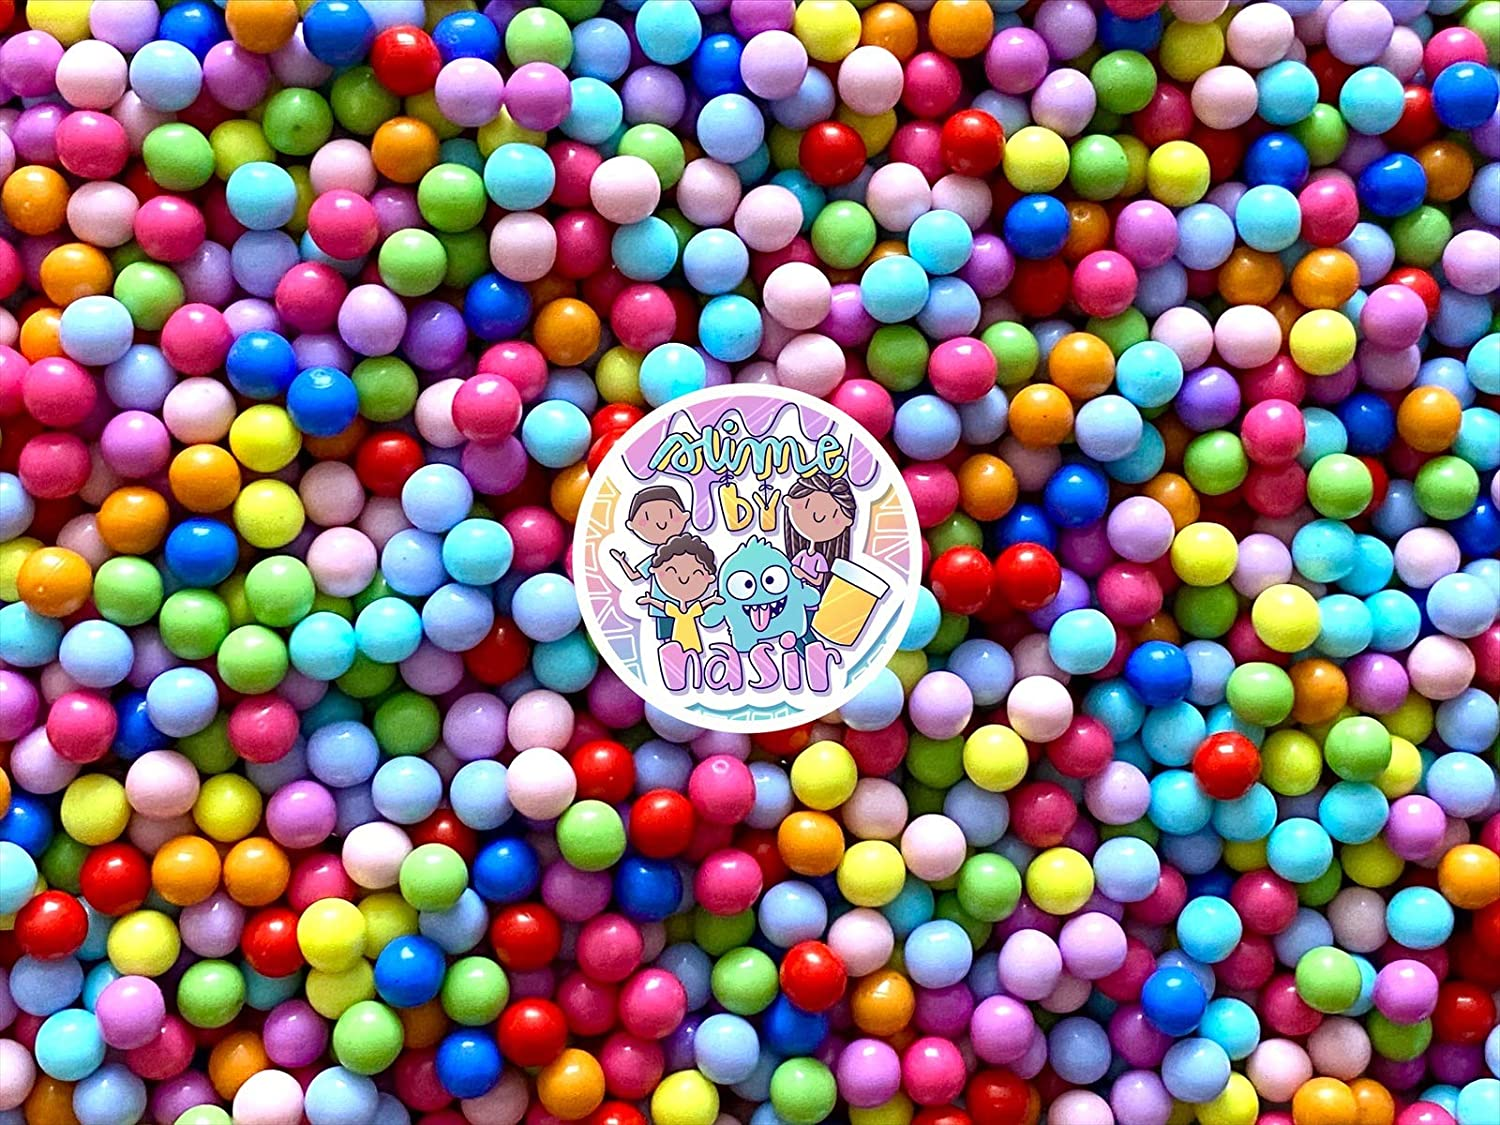 50g Colorful Fake Candy Sweets Sugar Crystals Sprinkles Decoden Resin Cabochons Decorations for Fake Cake Dessert Simulation Food Fake Dessert Polymer Clay (Rainbow Faux Nonpareil 4mm)